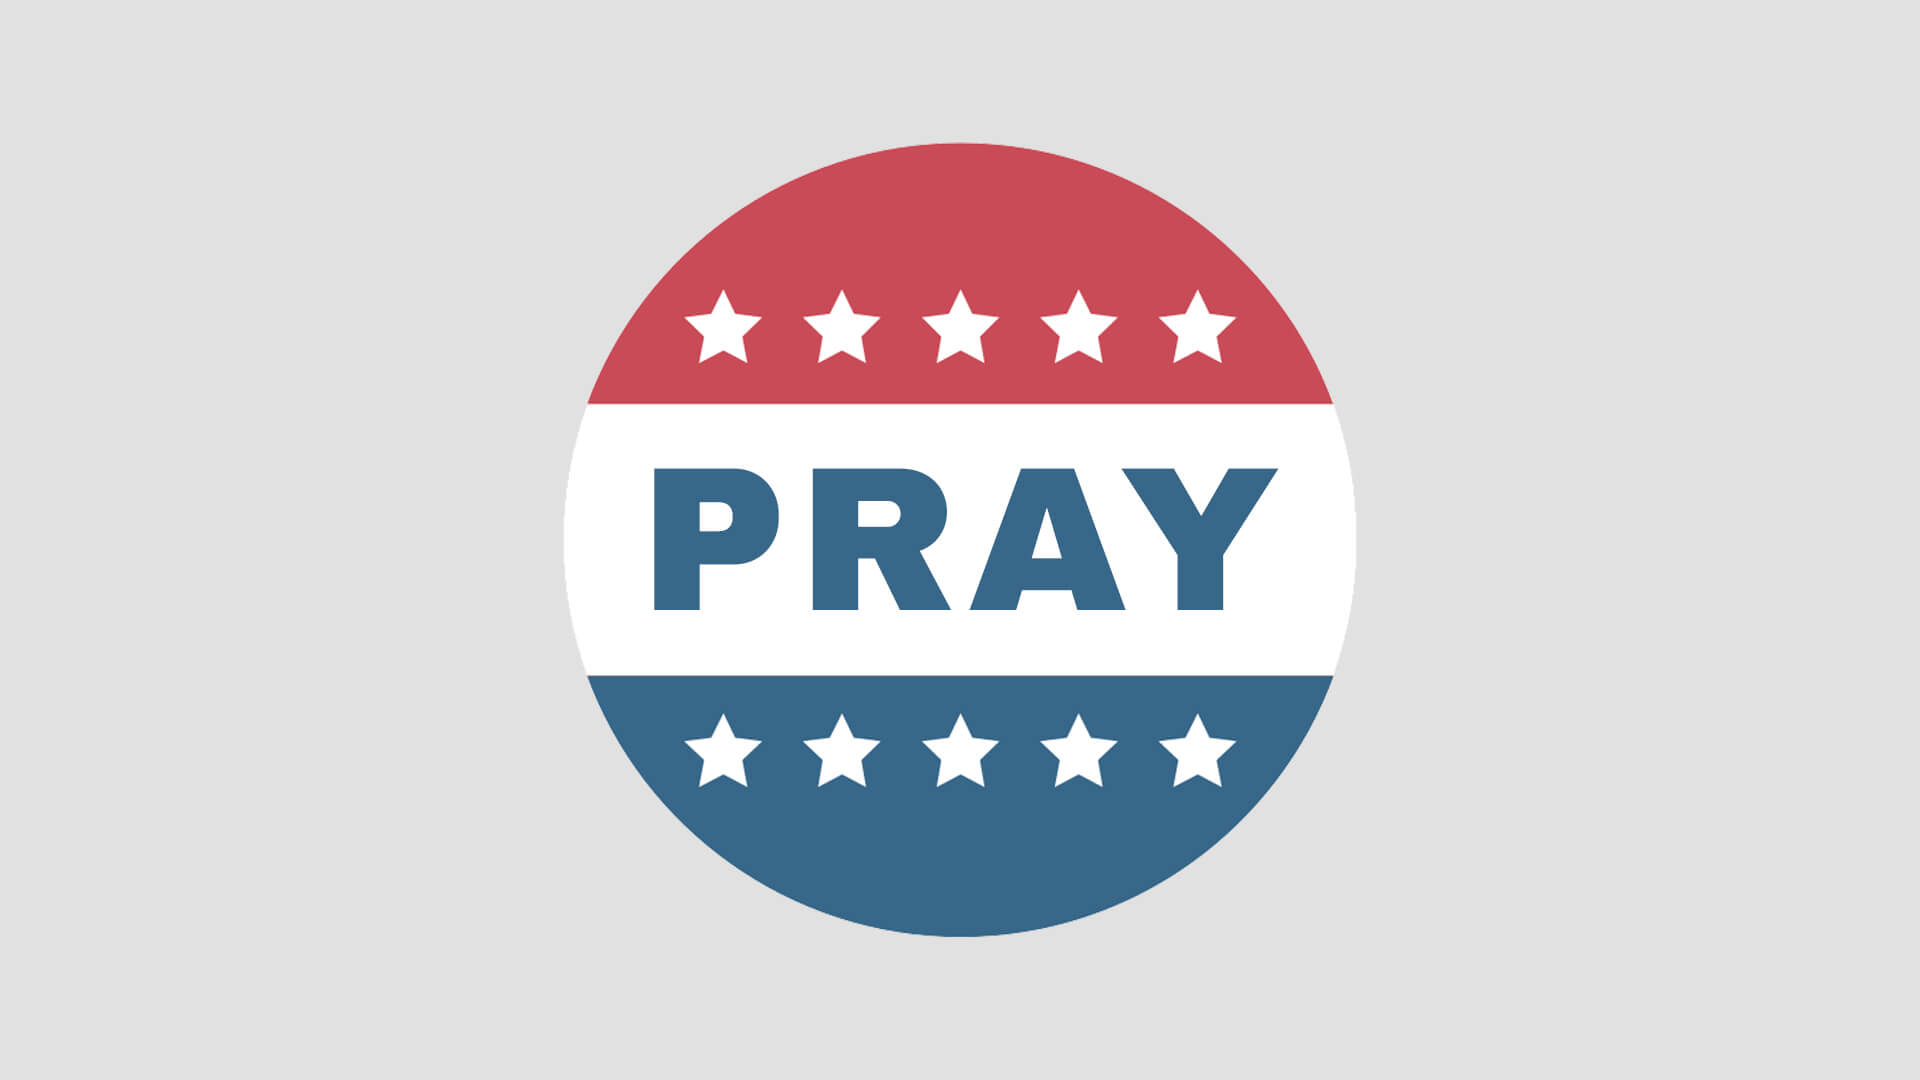 Event - Pray for Our Nation - Wide (16_9) copy (1).jpg